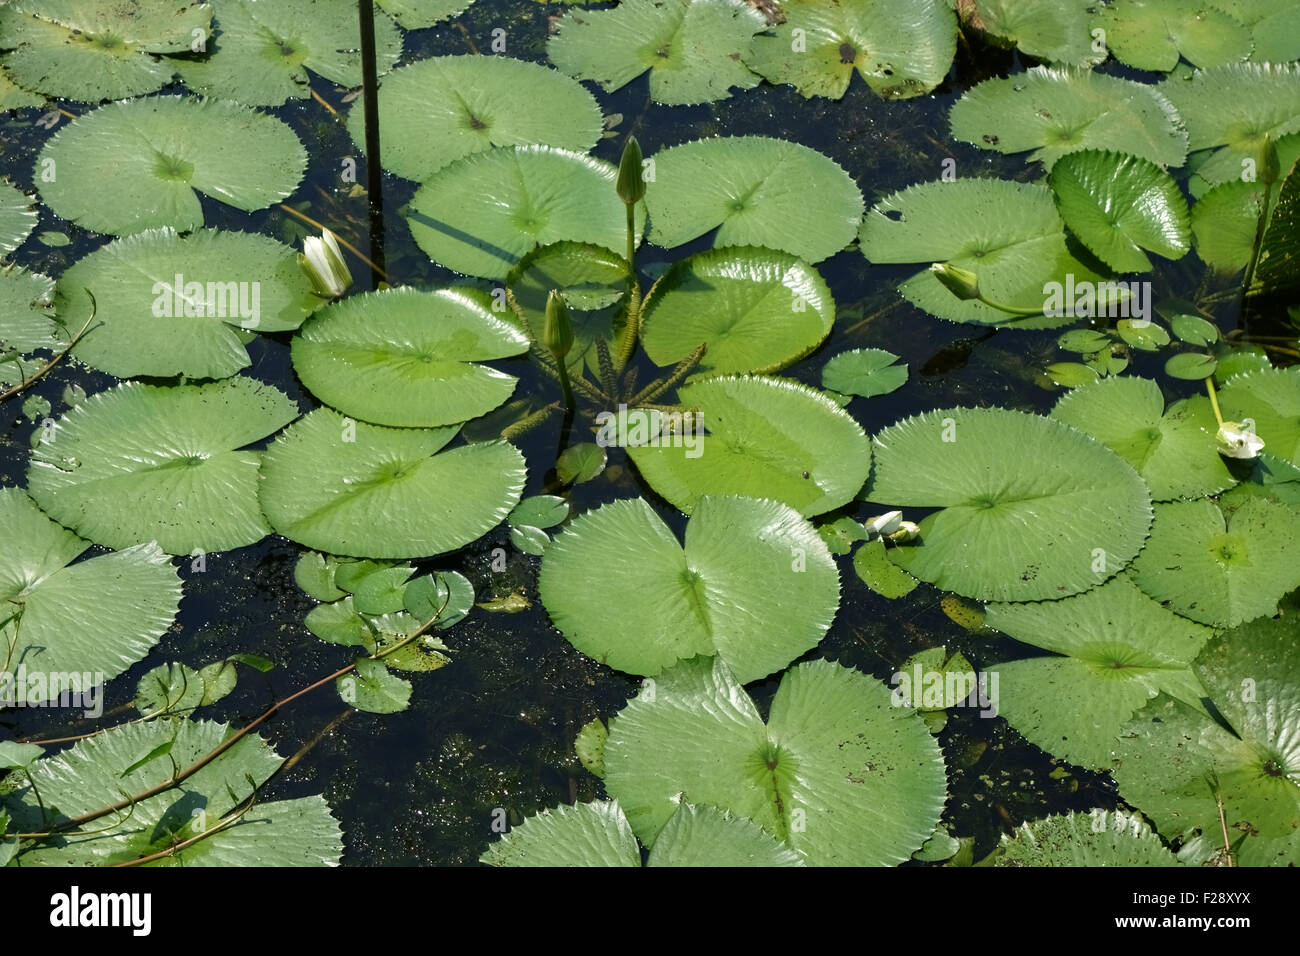 Water lilies, Nymphaea pubescens, lily pad leaves  of plants coming into flower on the surface of a lake on Koh - Stock Image